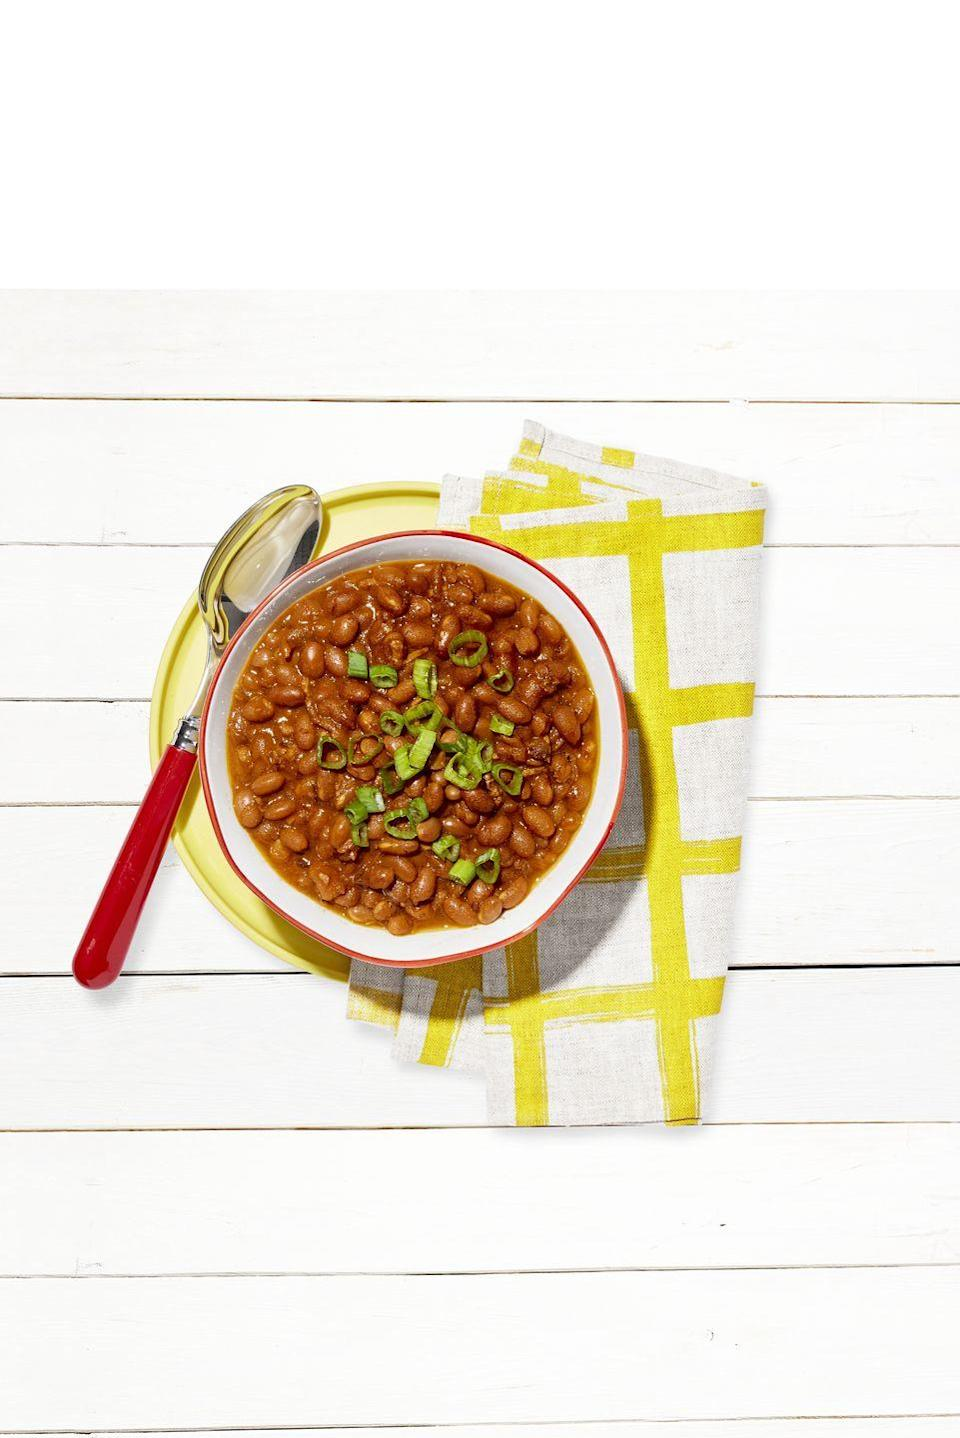 """<p>This hearty hands-off barbecue side dish practically makes itself. </p><p><strong><a href=""""https://www.countryliving.com/food-drinks/a36742540/slow-cooker-baked-beans-recipe/"""" rel=""""nofollow noopener"""" target=""""_blank"""" data-ylk=""""slk:Get the recipe"""" class=""""link rapid-noclick-resp"""">Get the recipe</a>.</strong></p>"""